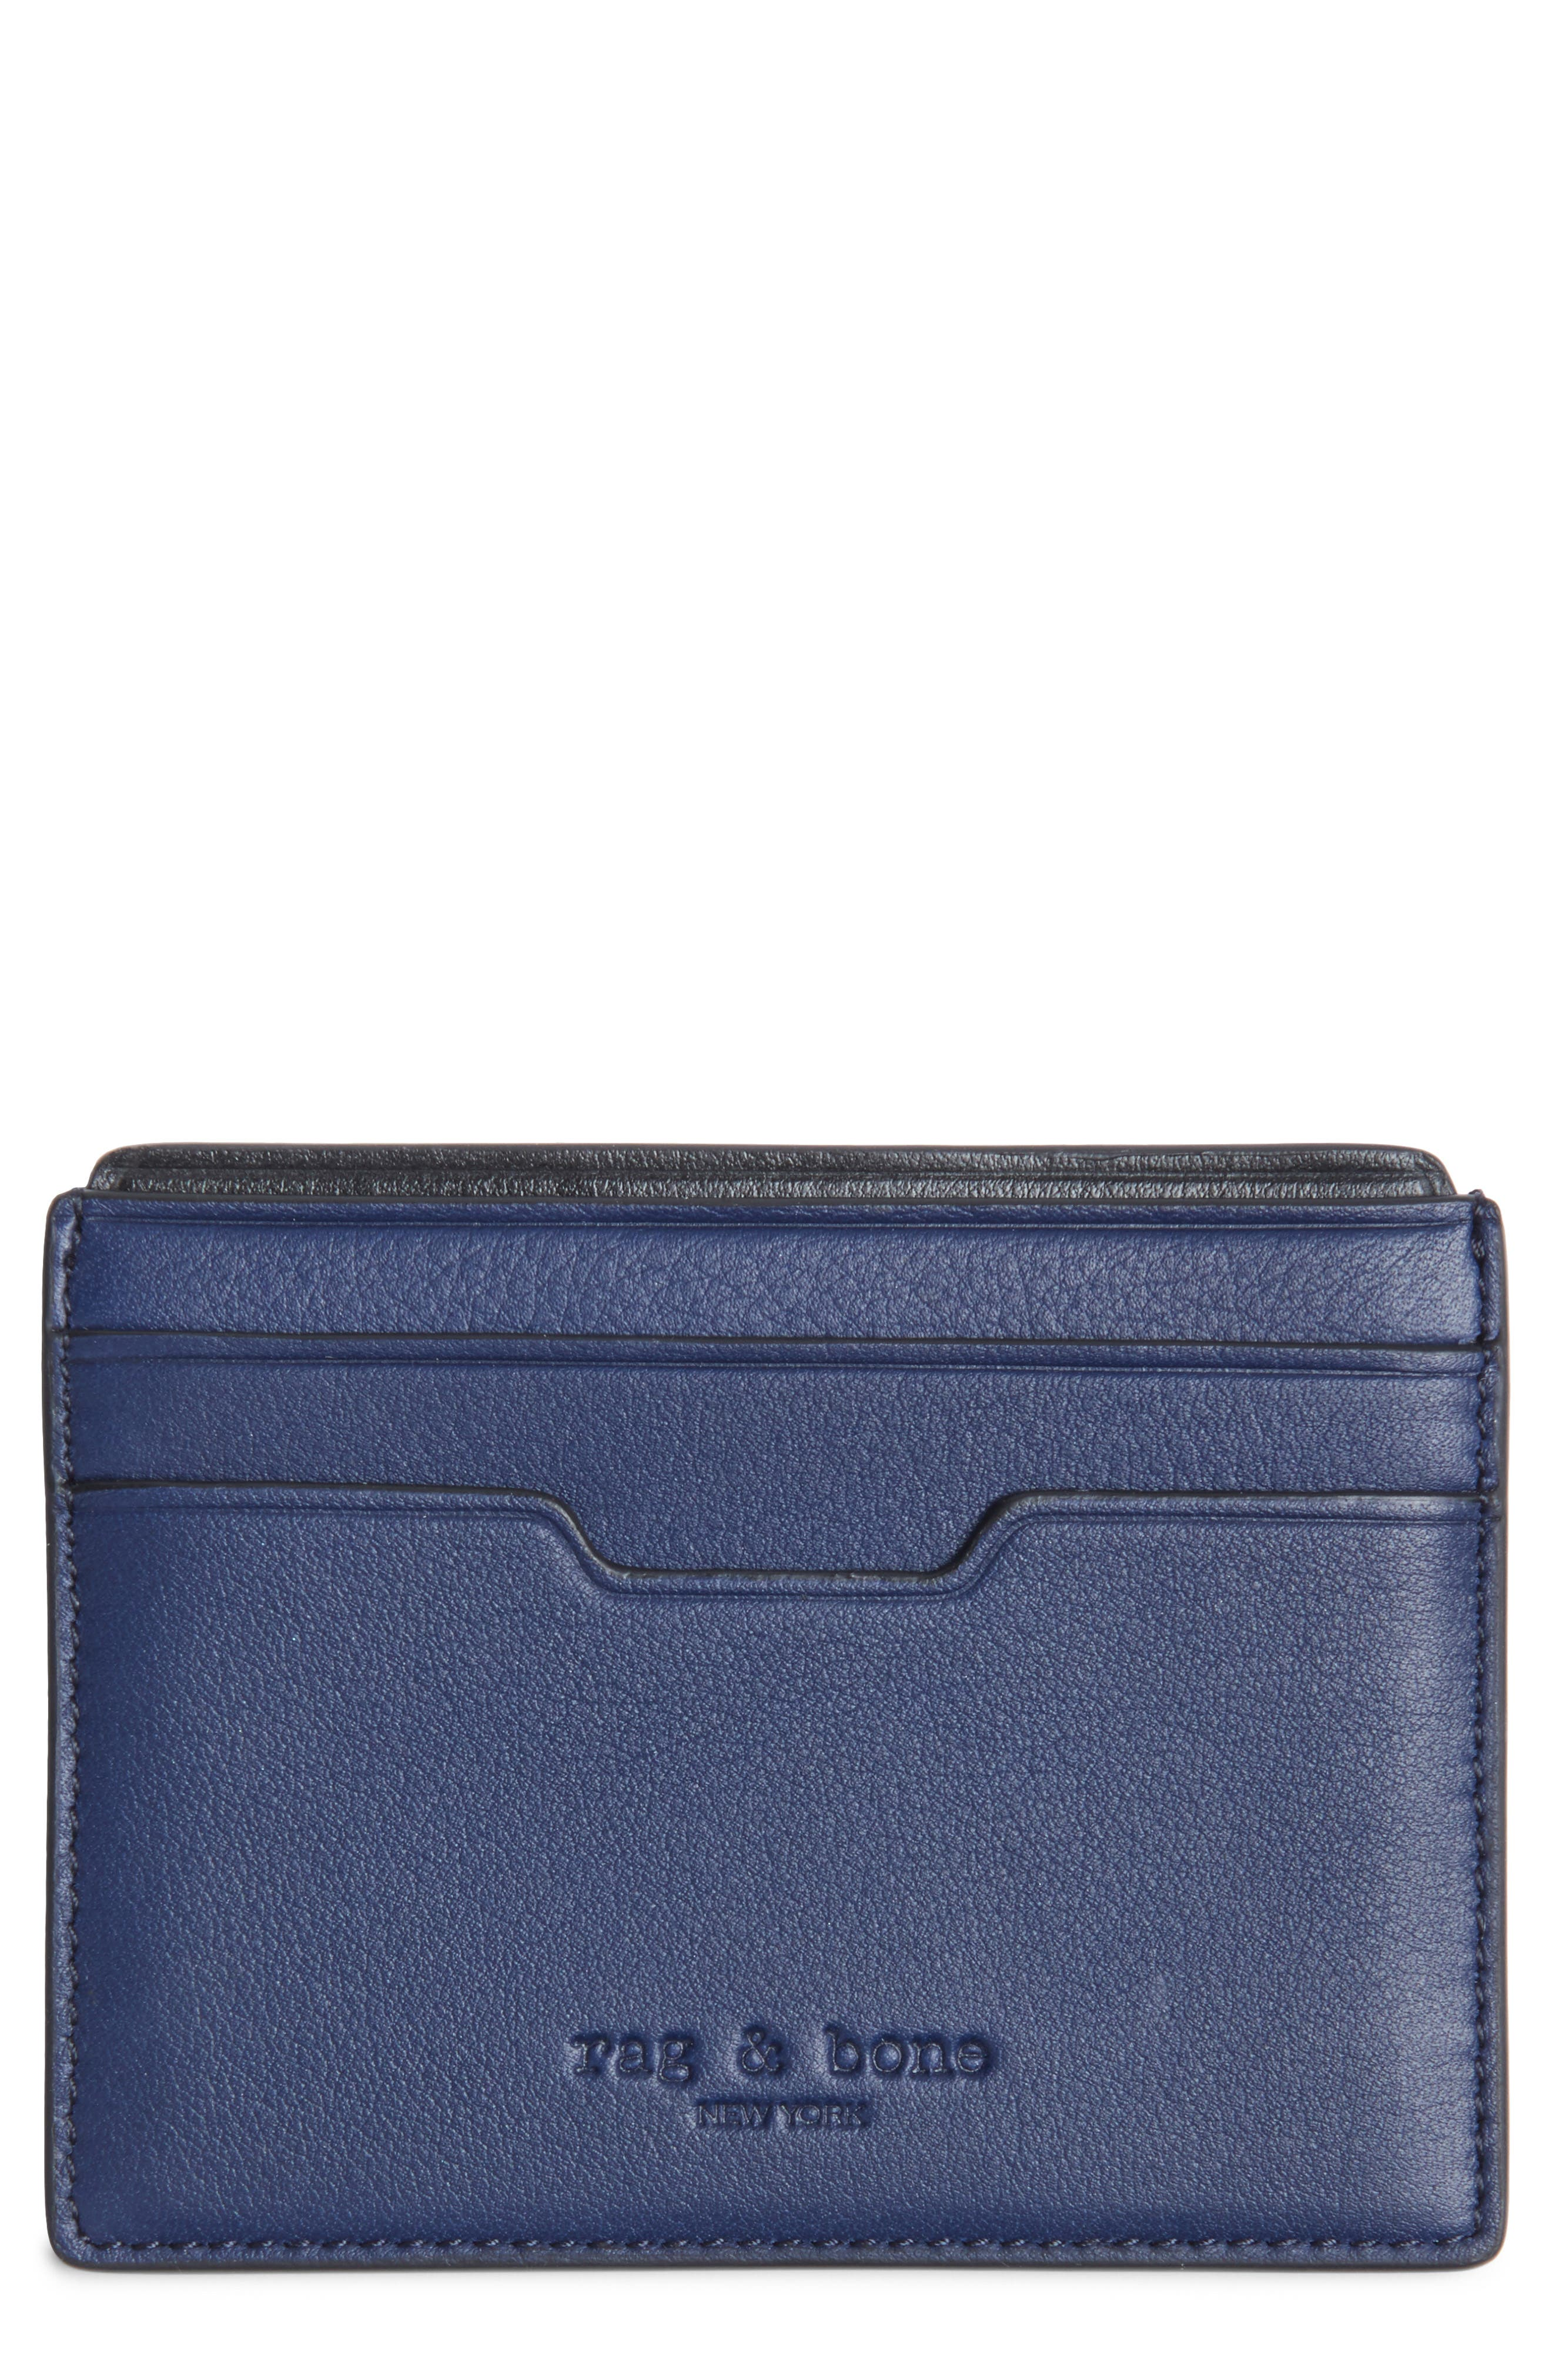 Leather Card Case,                             Main thumbnail 1, color,                             410